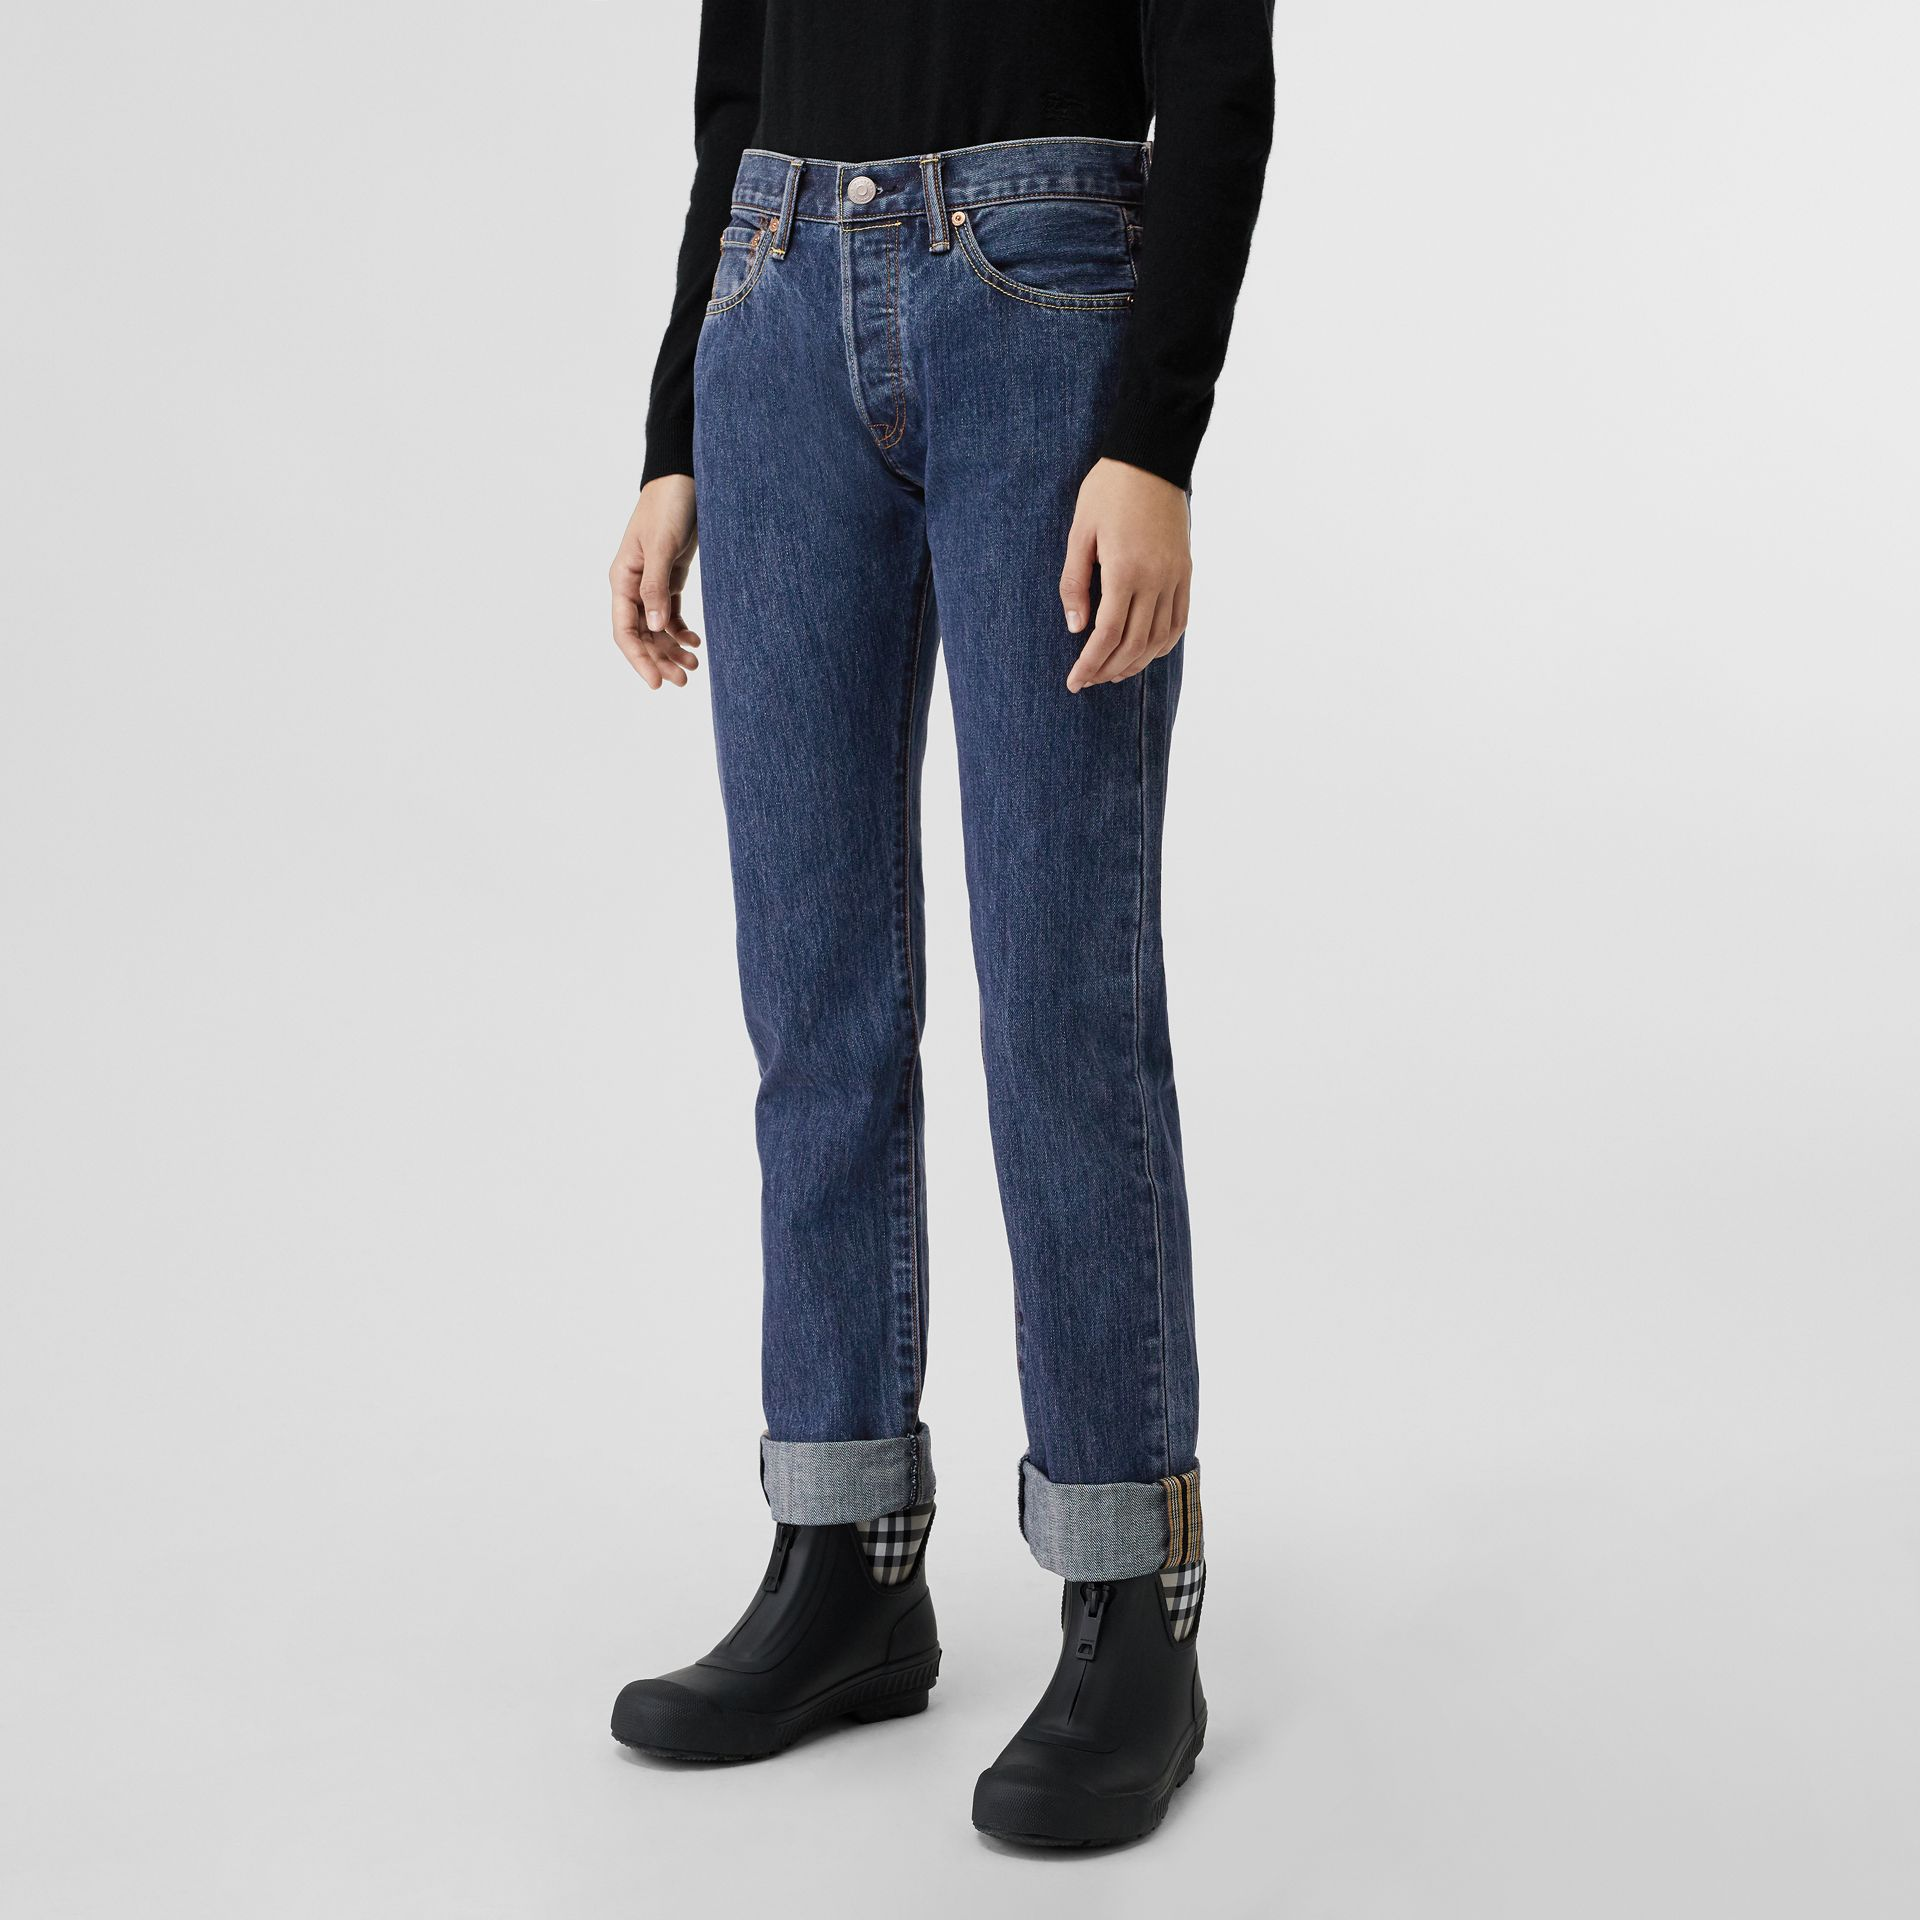 Jean droit en denim selvedge japonais (Bleu) - Femme | Burberry Canada - photo de la galerie 5